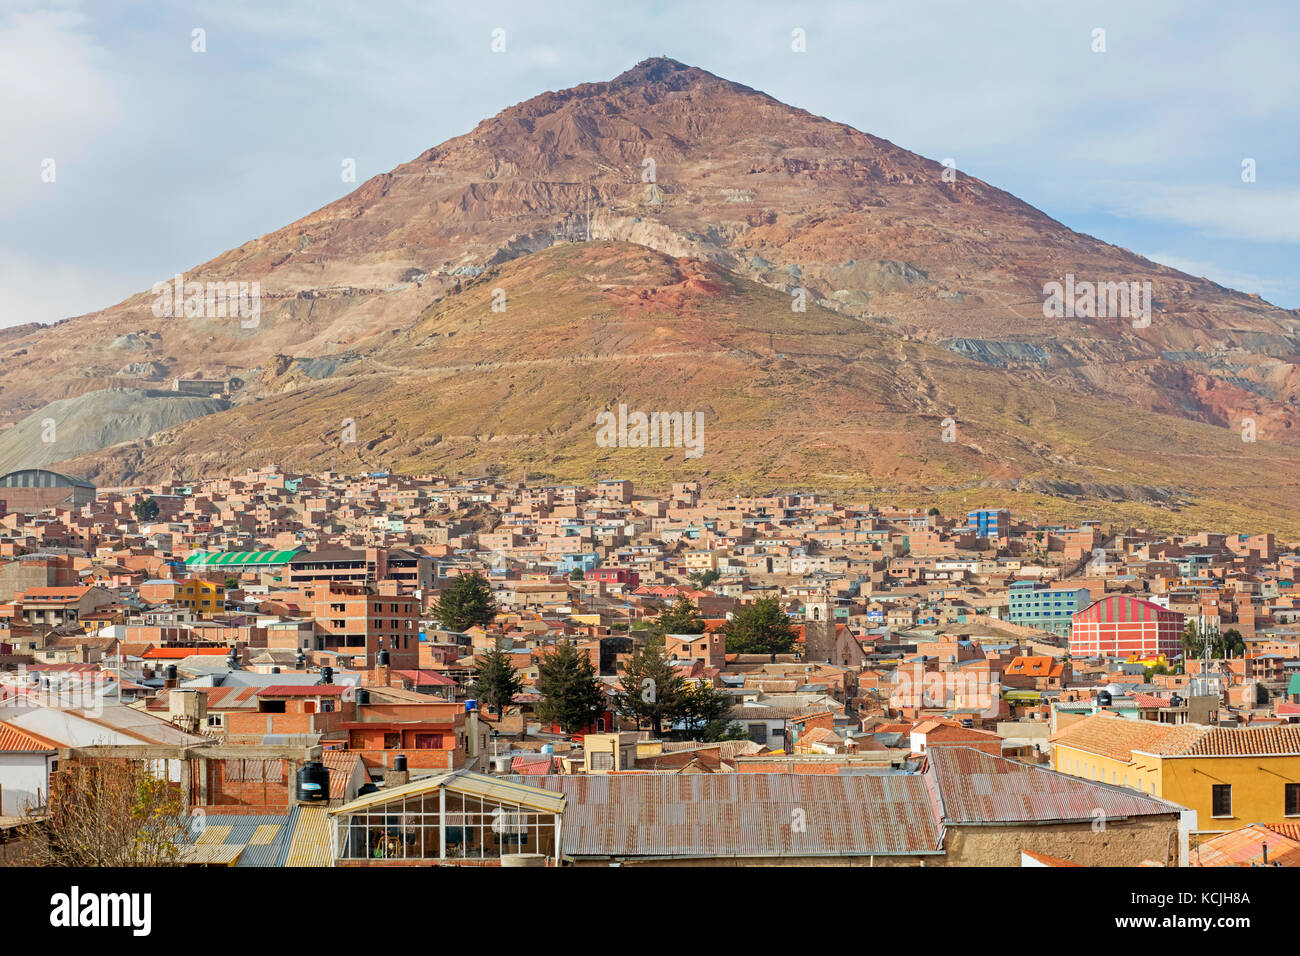 Aerial view over the city Potosi and the Cerro Rico silver mine, Tomás Frías, Bolivia - Stock Image